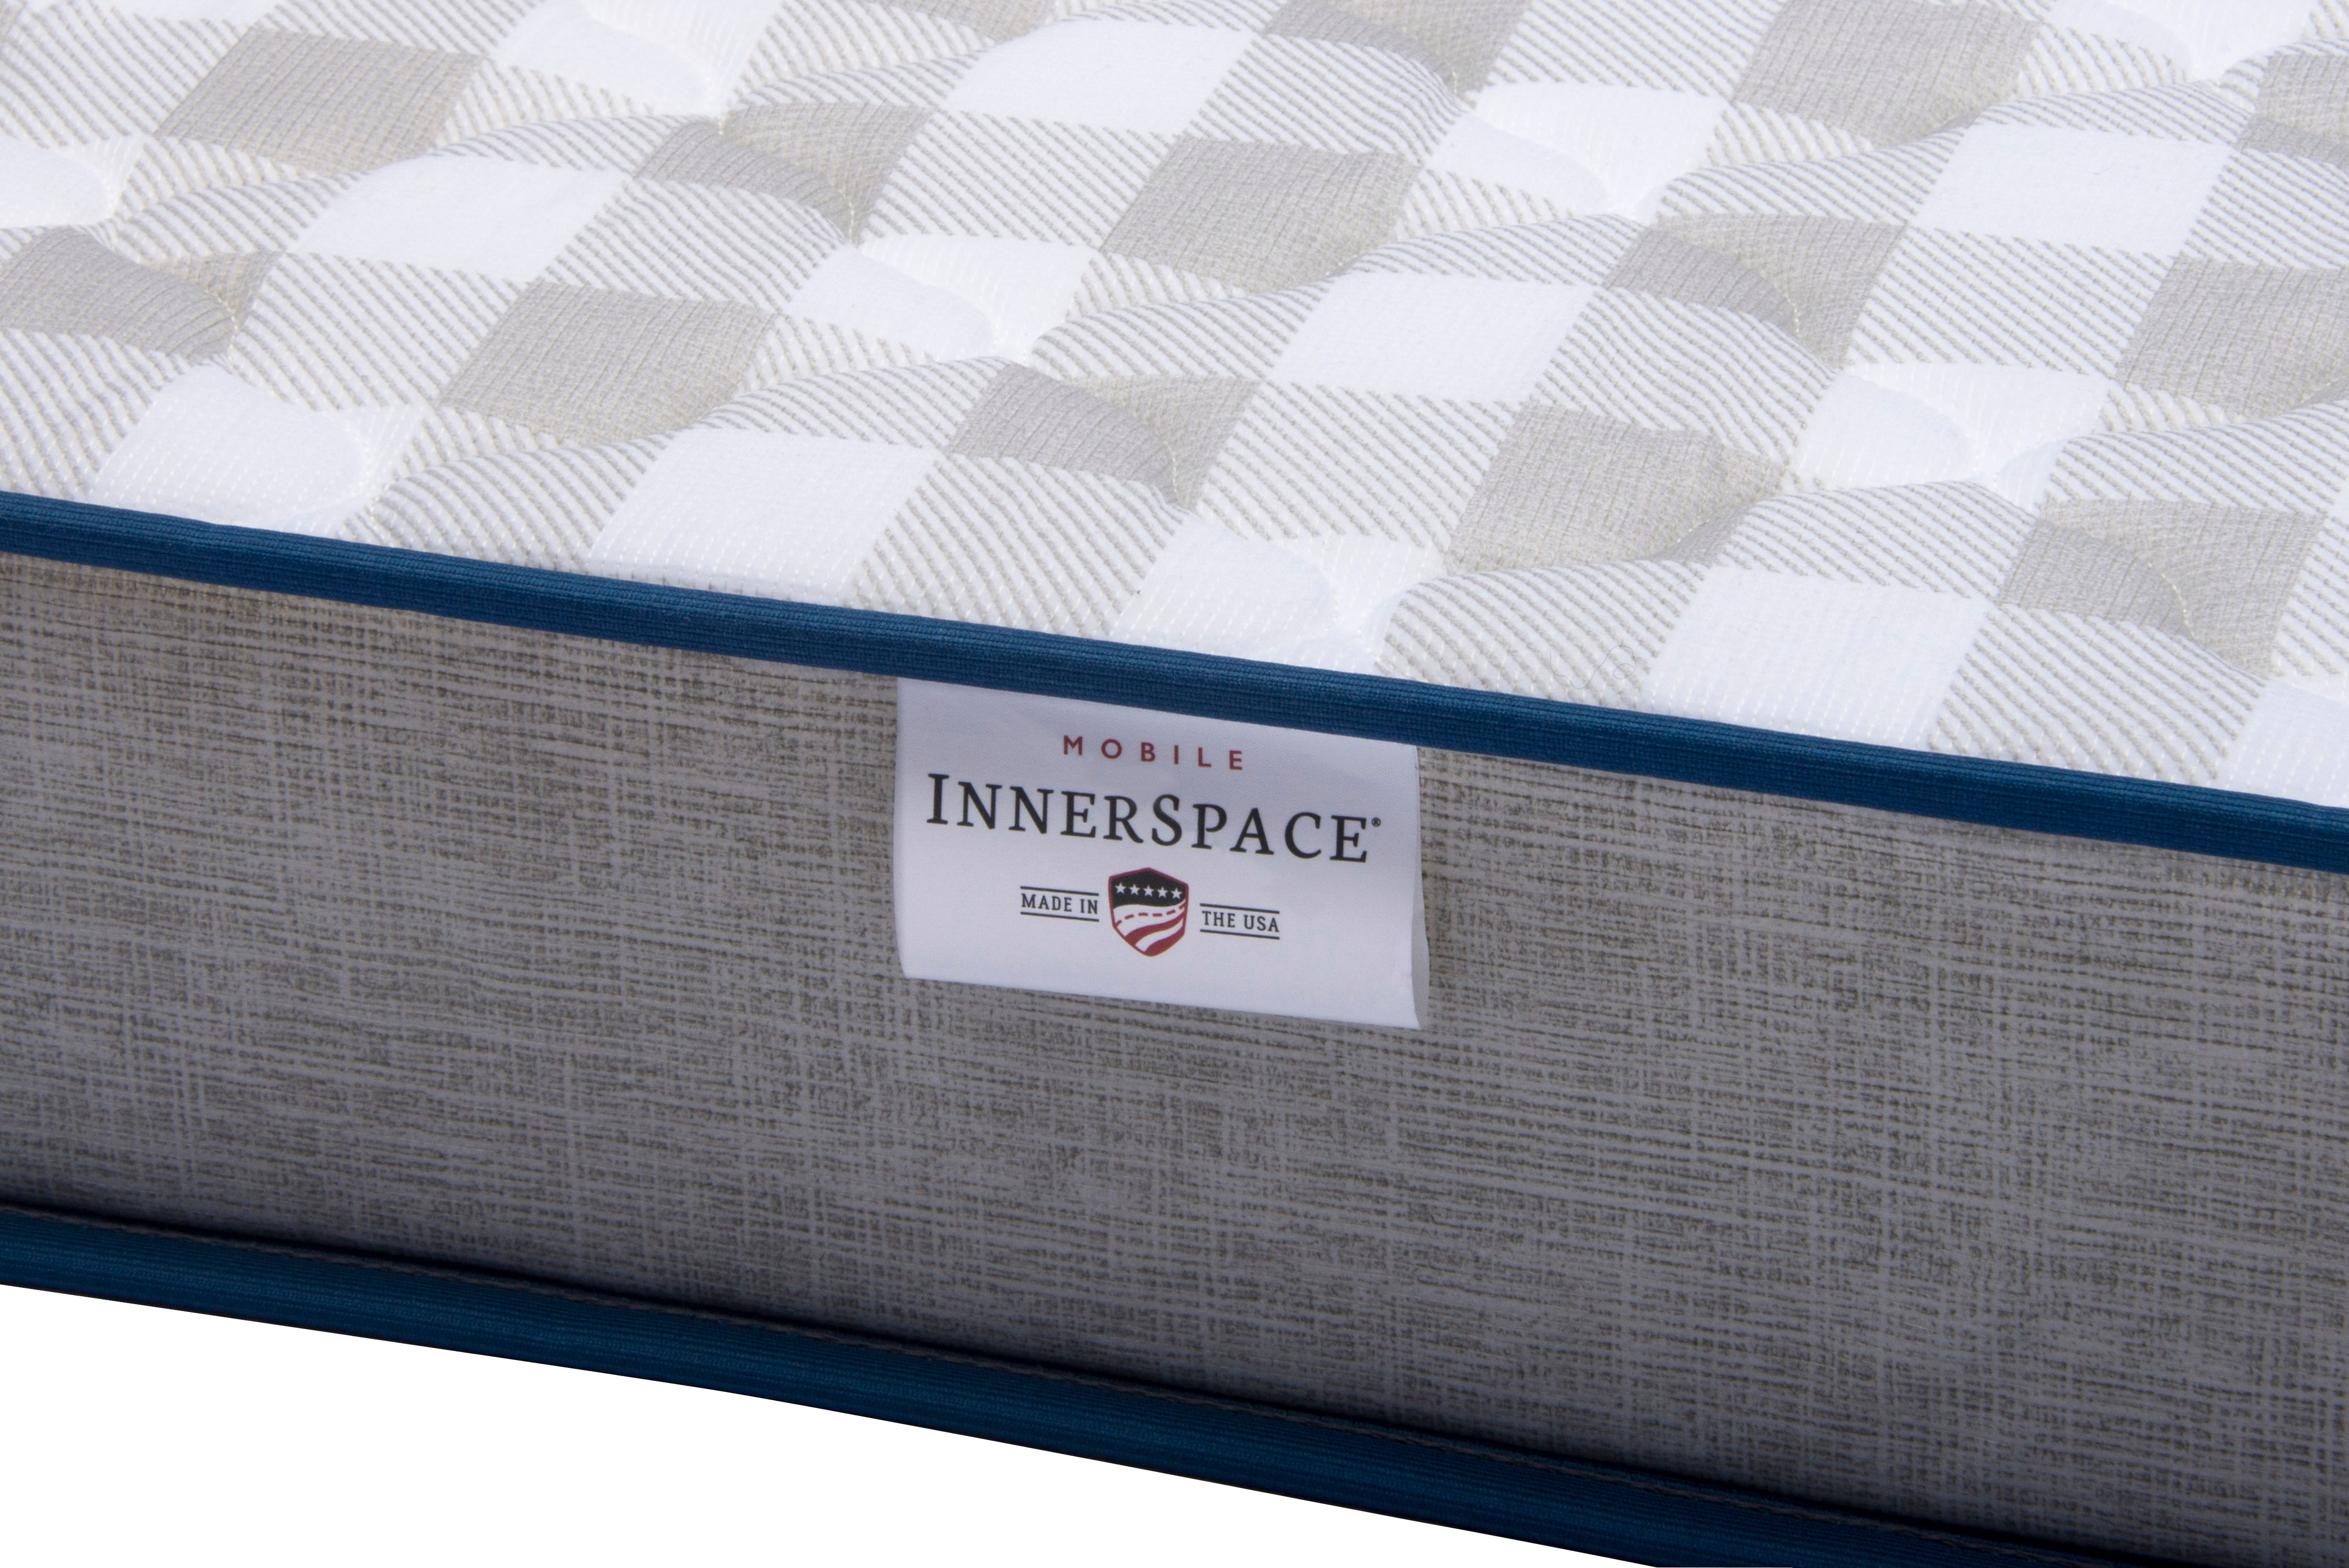 Mobile InnerSpace Truck Relax Mattress 42 by 80 by 5.5-Inch